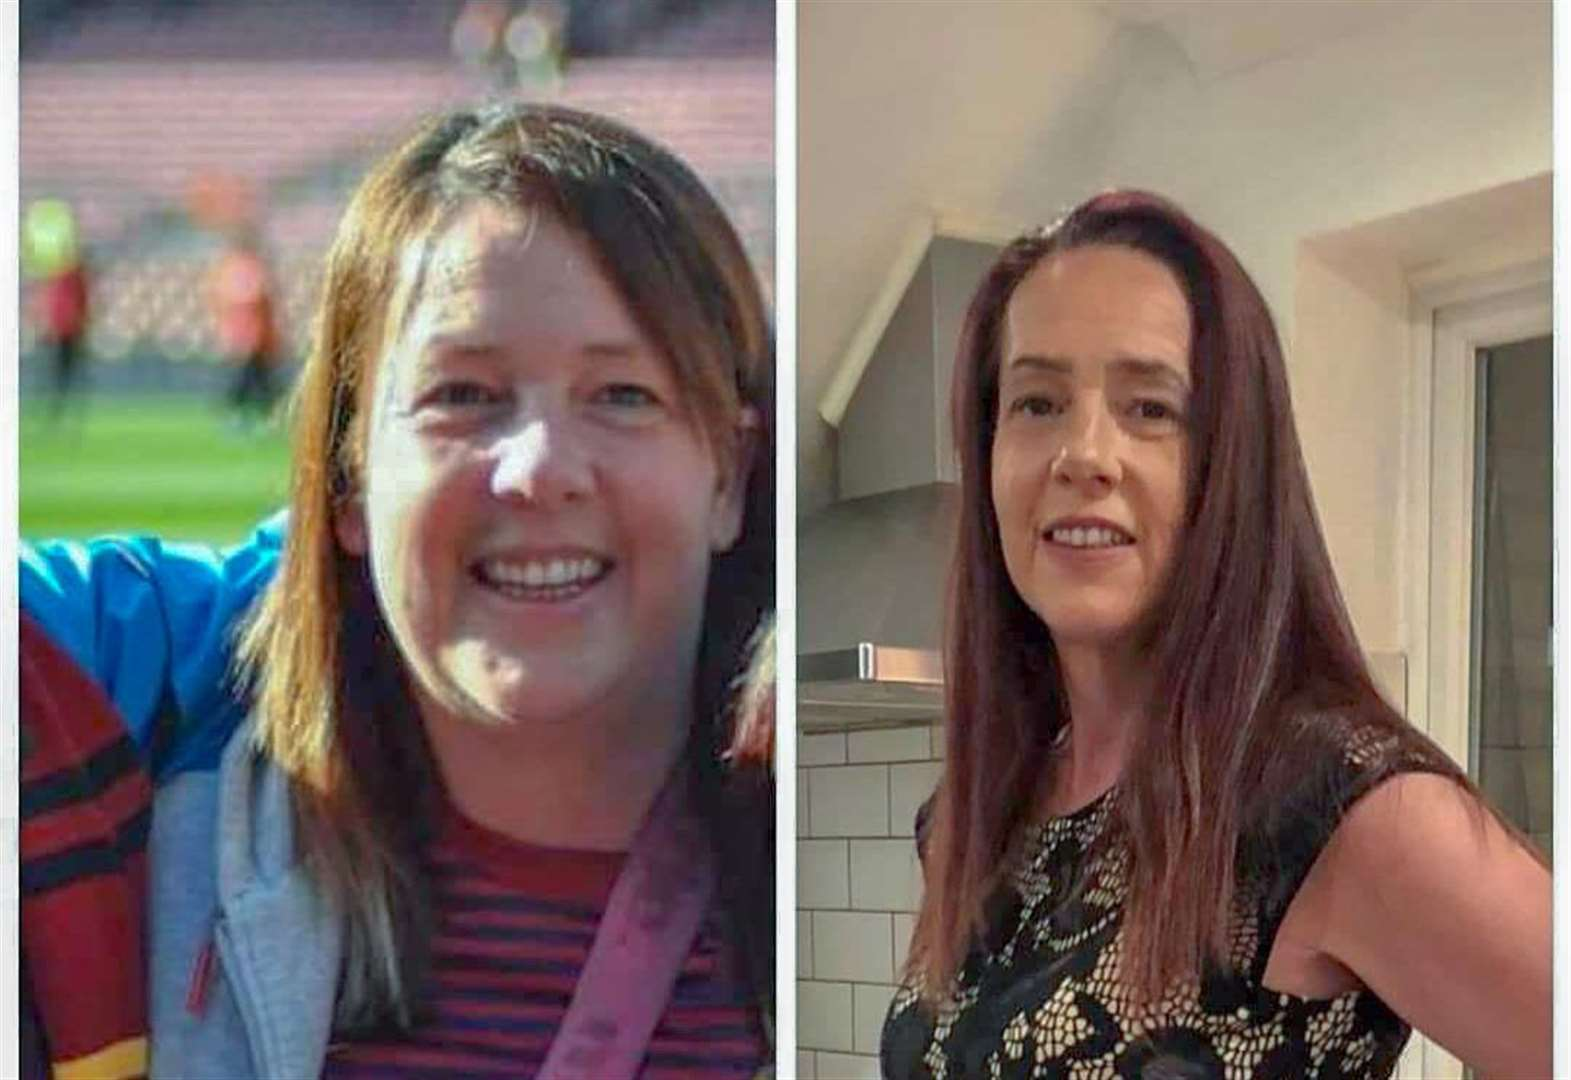 Fenland Slimming World members have shed over 4,700 stone between them in the past year